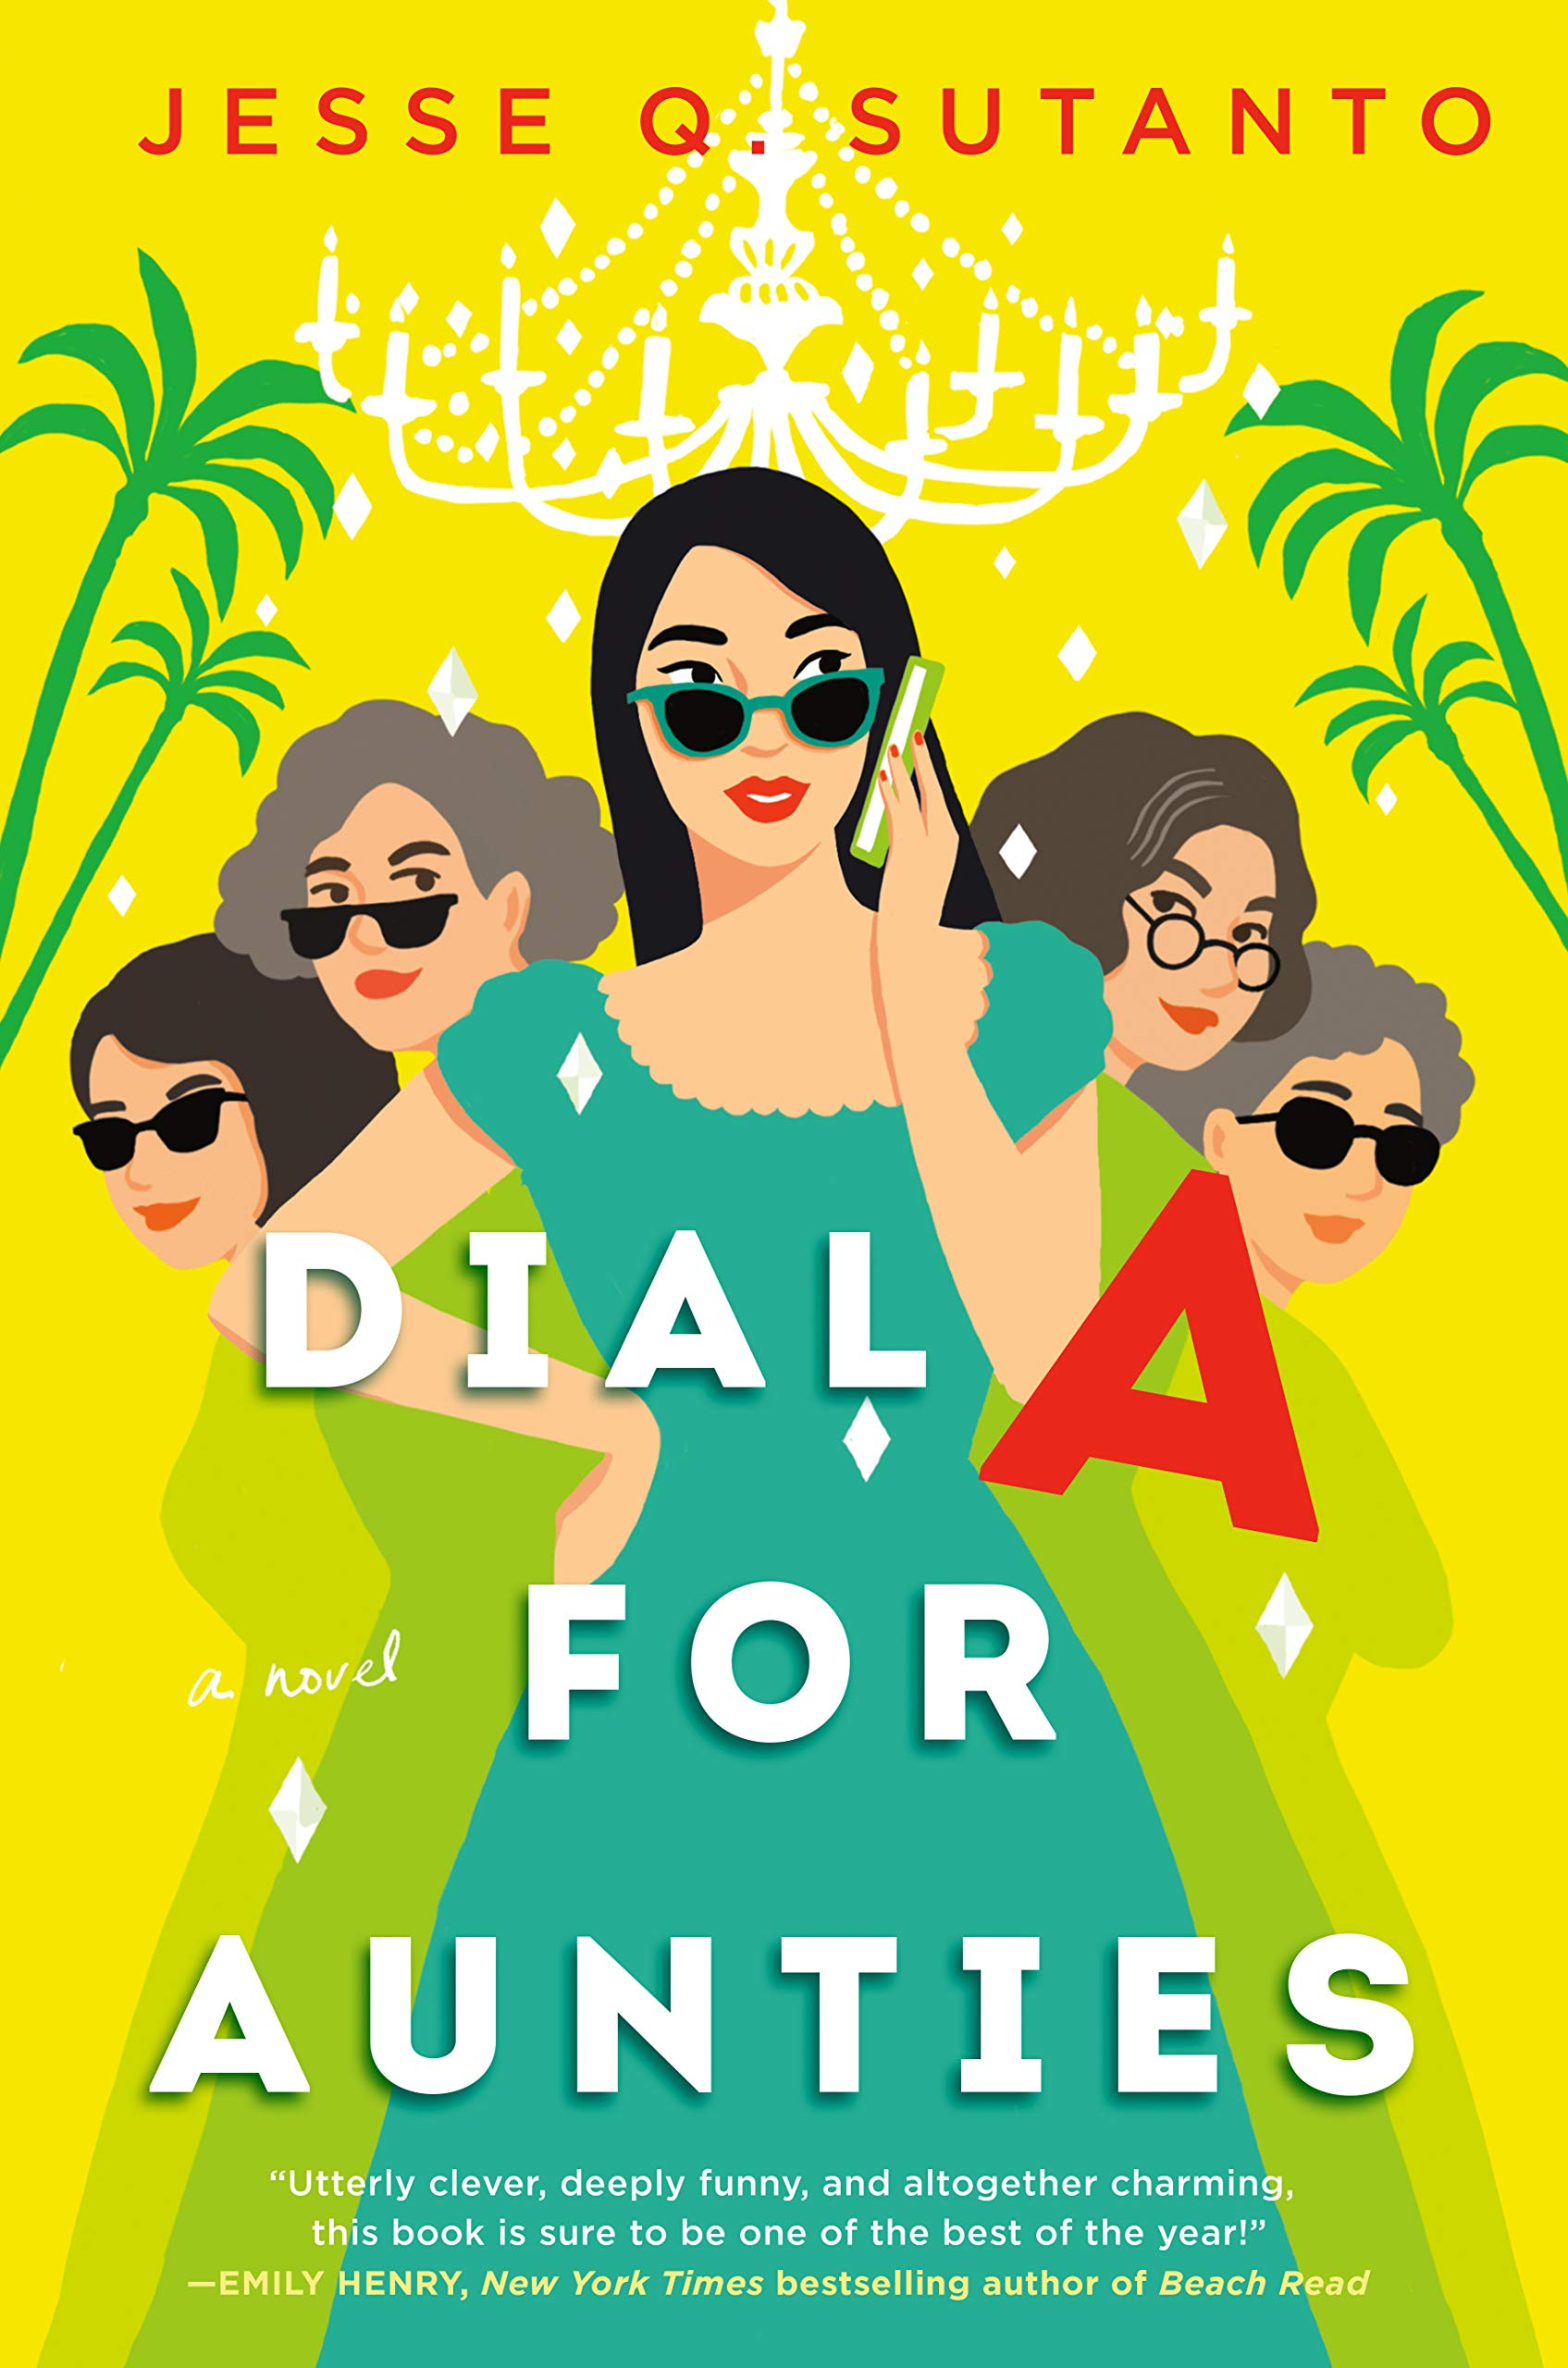 Dial A for Aunties: Sutanto, Jesse Q.: 9780593336731: Amazon.com: Books